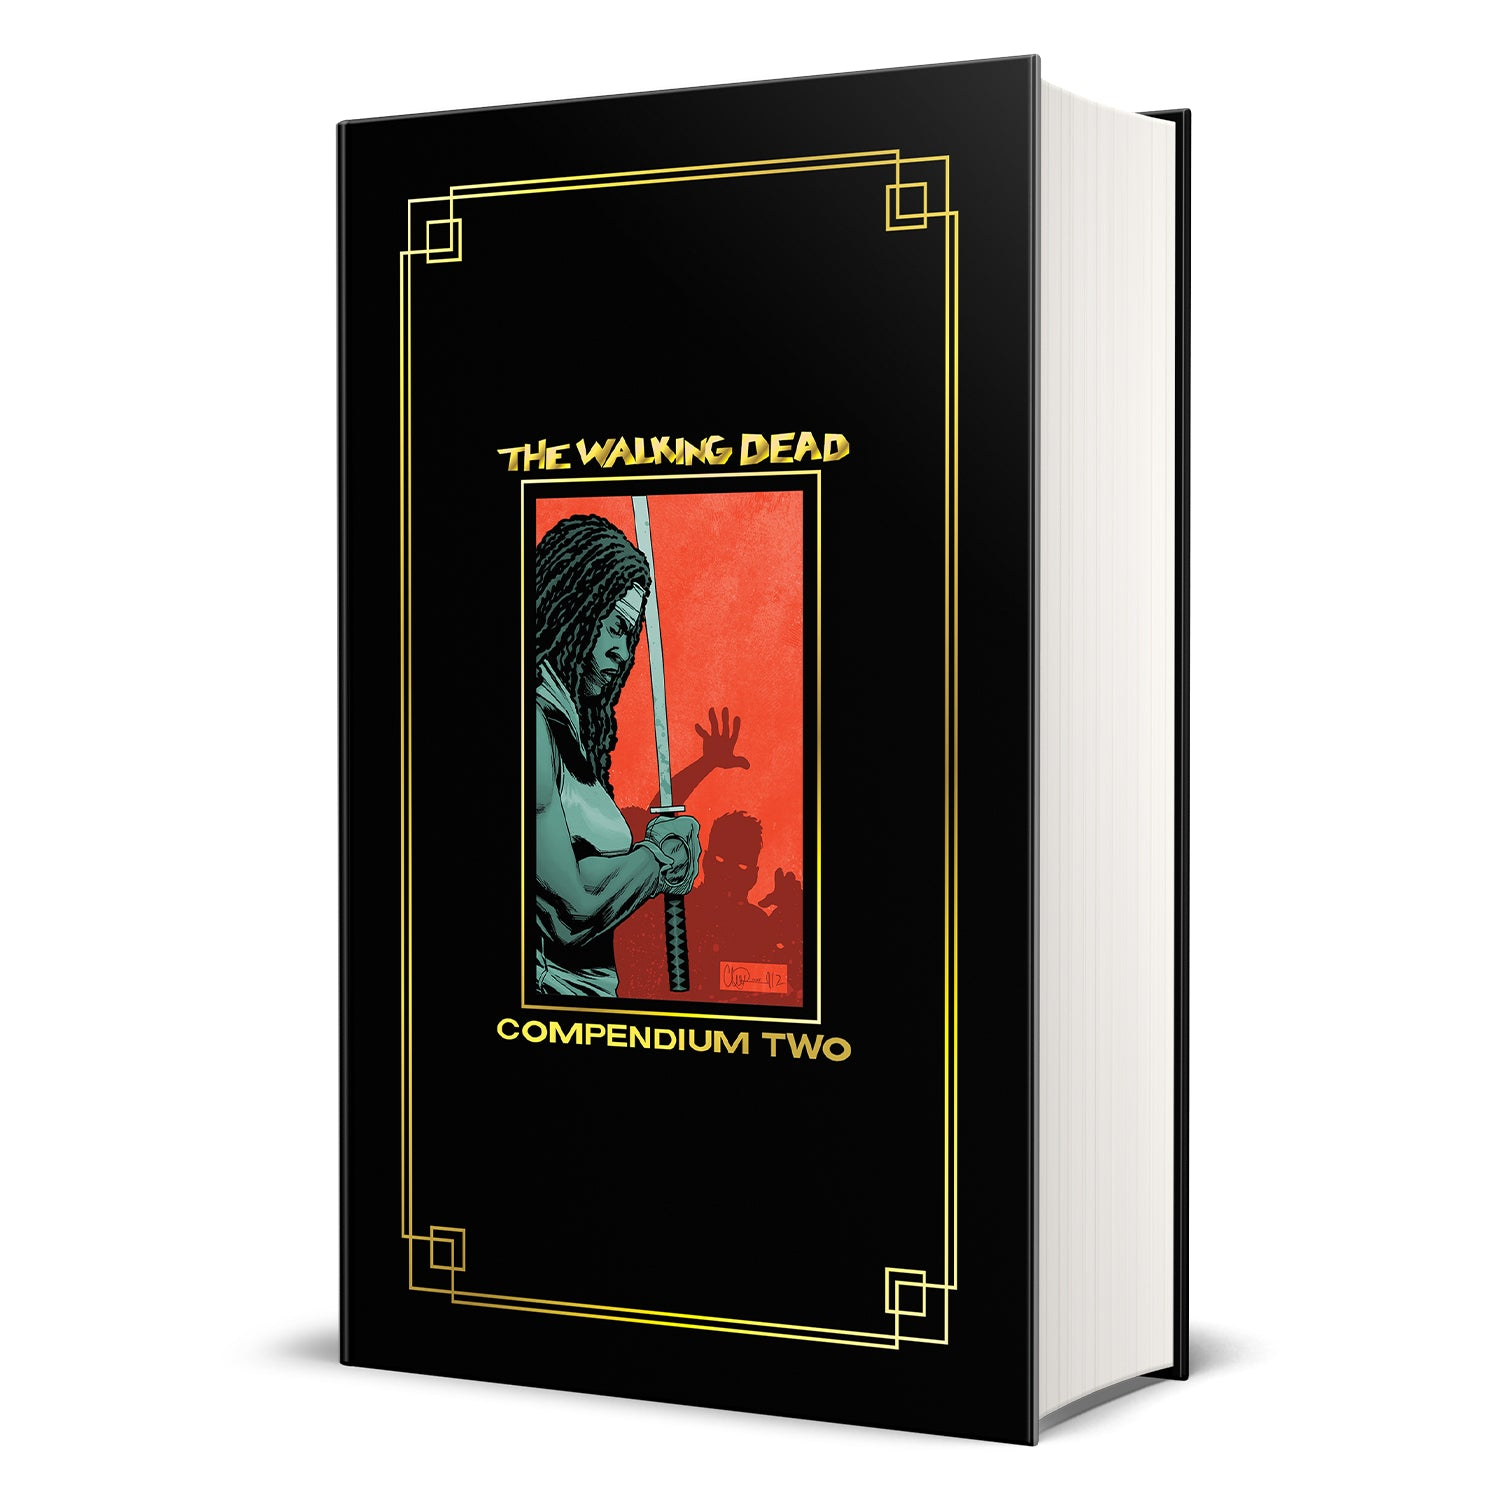 THE WALKING DEAD: Compendium 2 Hardcover (Gold Foil Version)